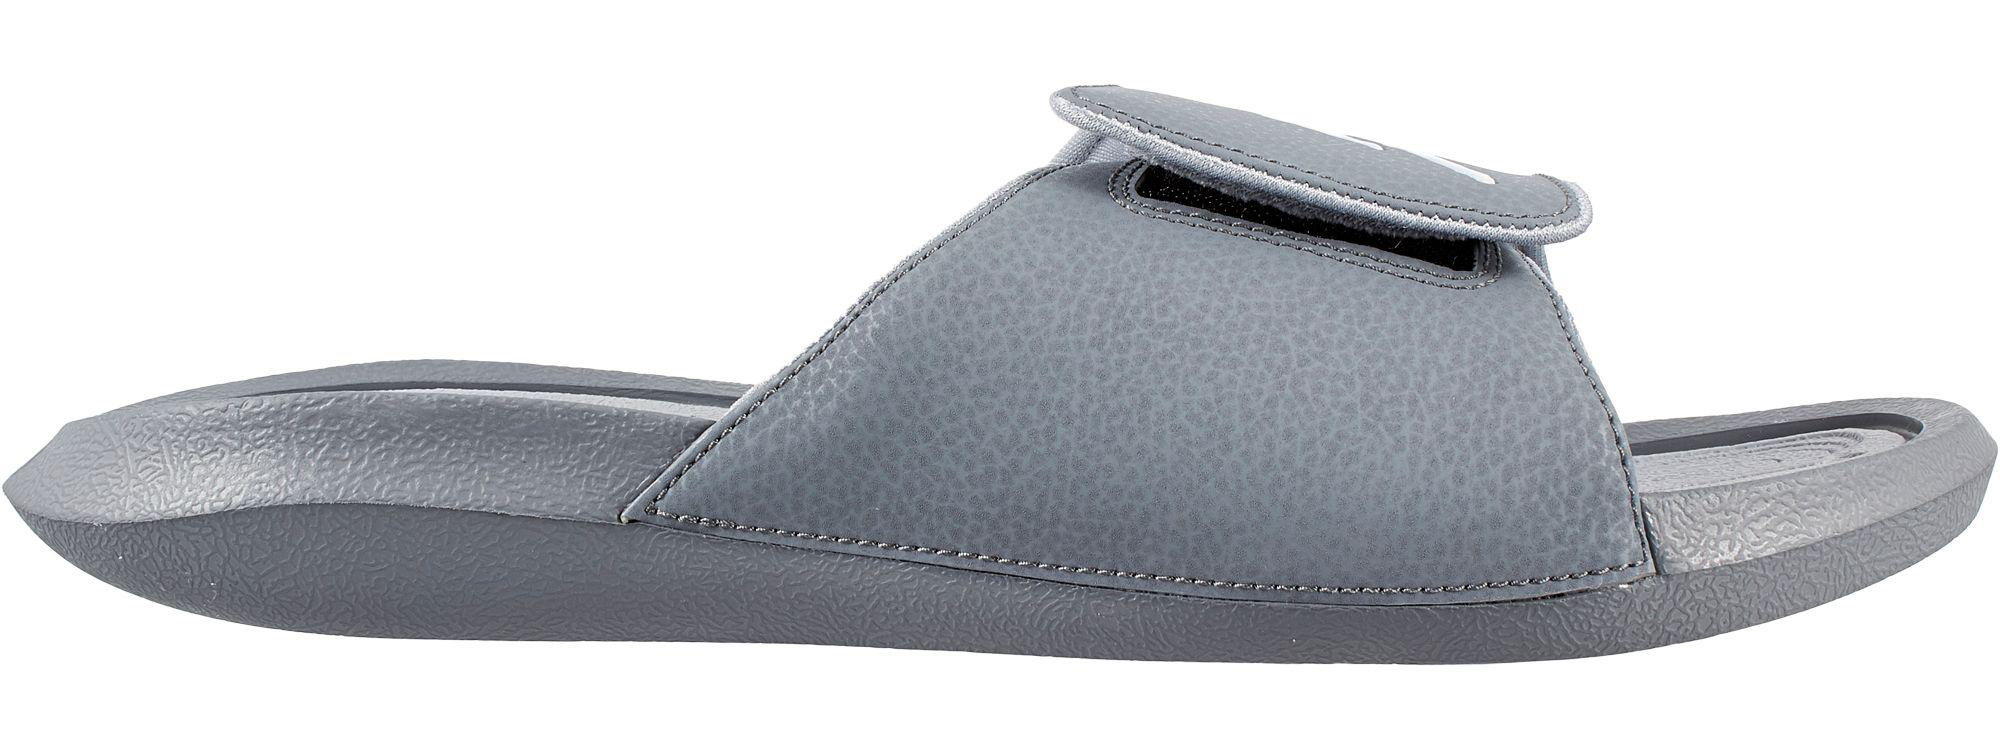 cc245f83be71e7 Lyst - Nike Hydro 6 Slides in Gray for Men